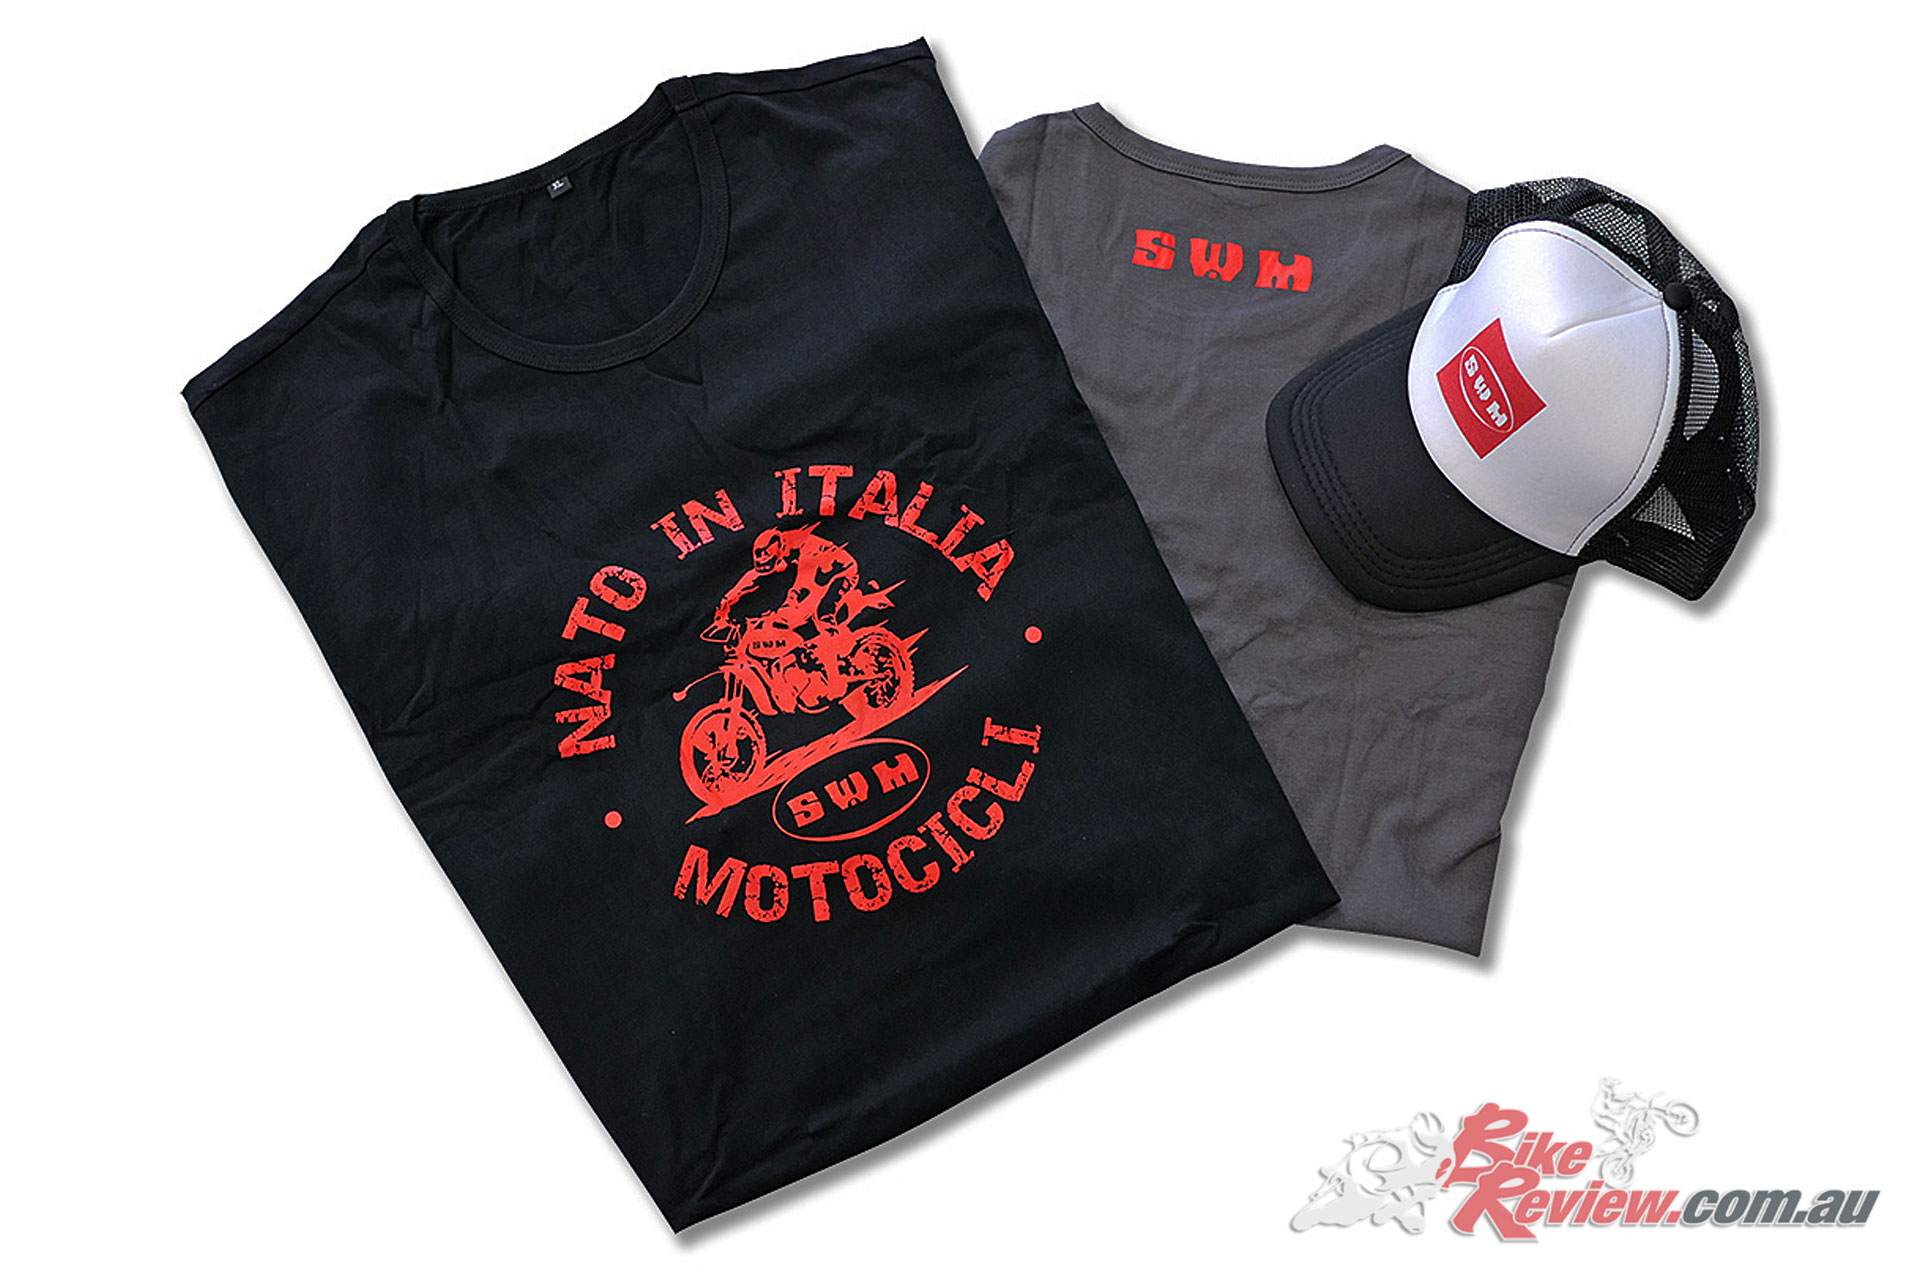 SWM Motorcycles: Retro Trucker Cap & 'Born in Italy' Retro T-Shirt